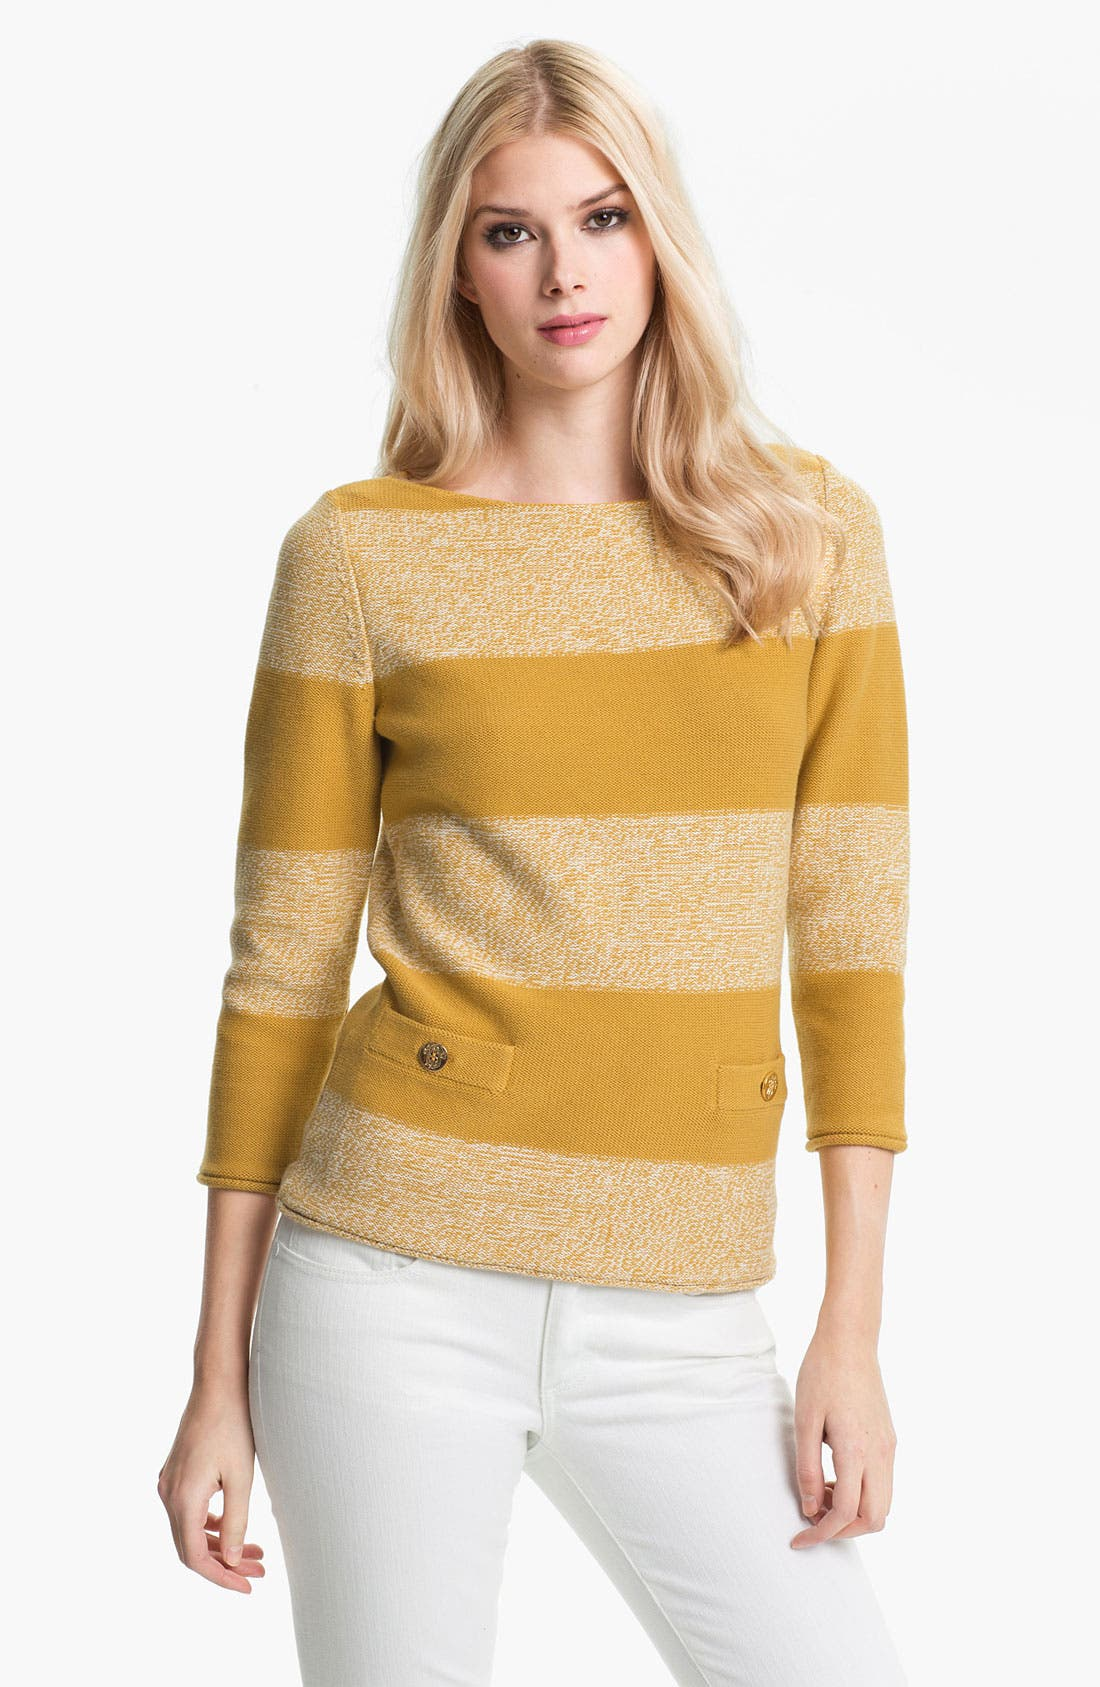 Alternate Image 1 Selected - Tory Burch 'Becky' Sweater